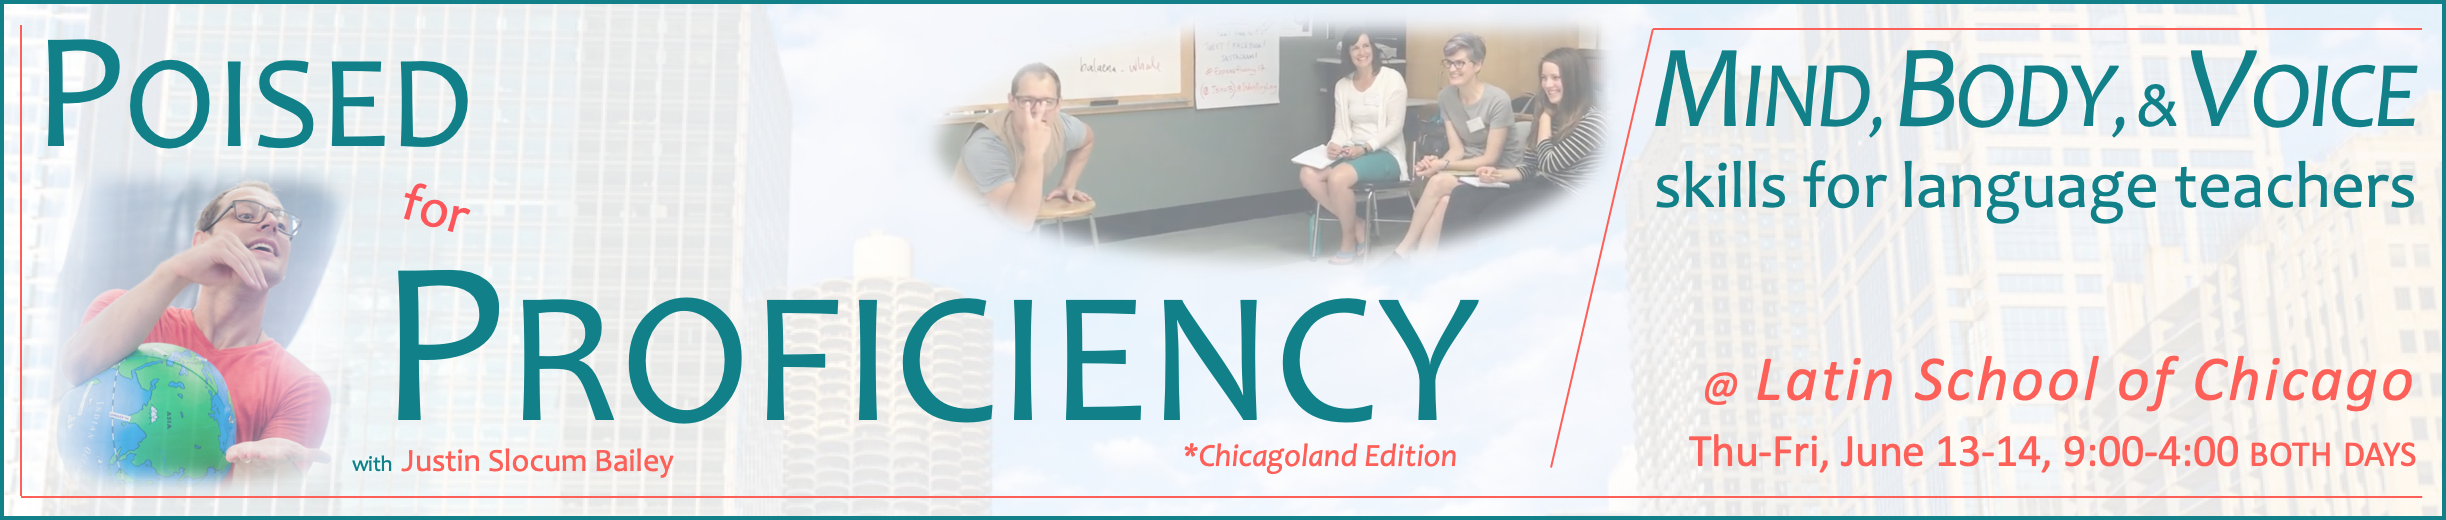 Poised for Proficiency Chicago banner with border and background 2